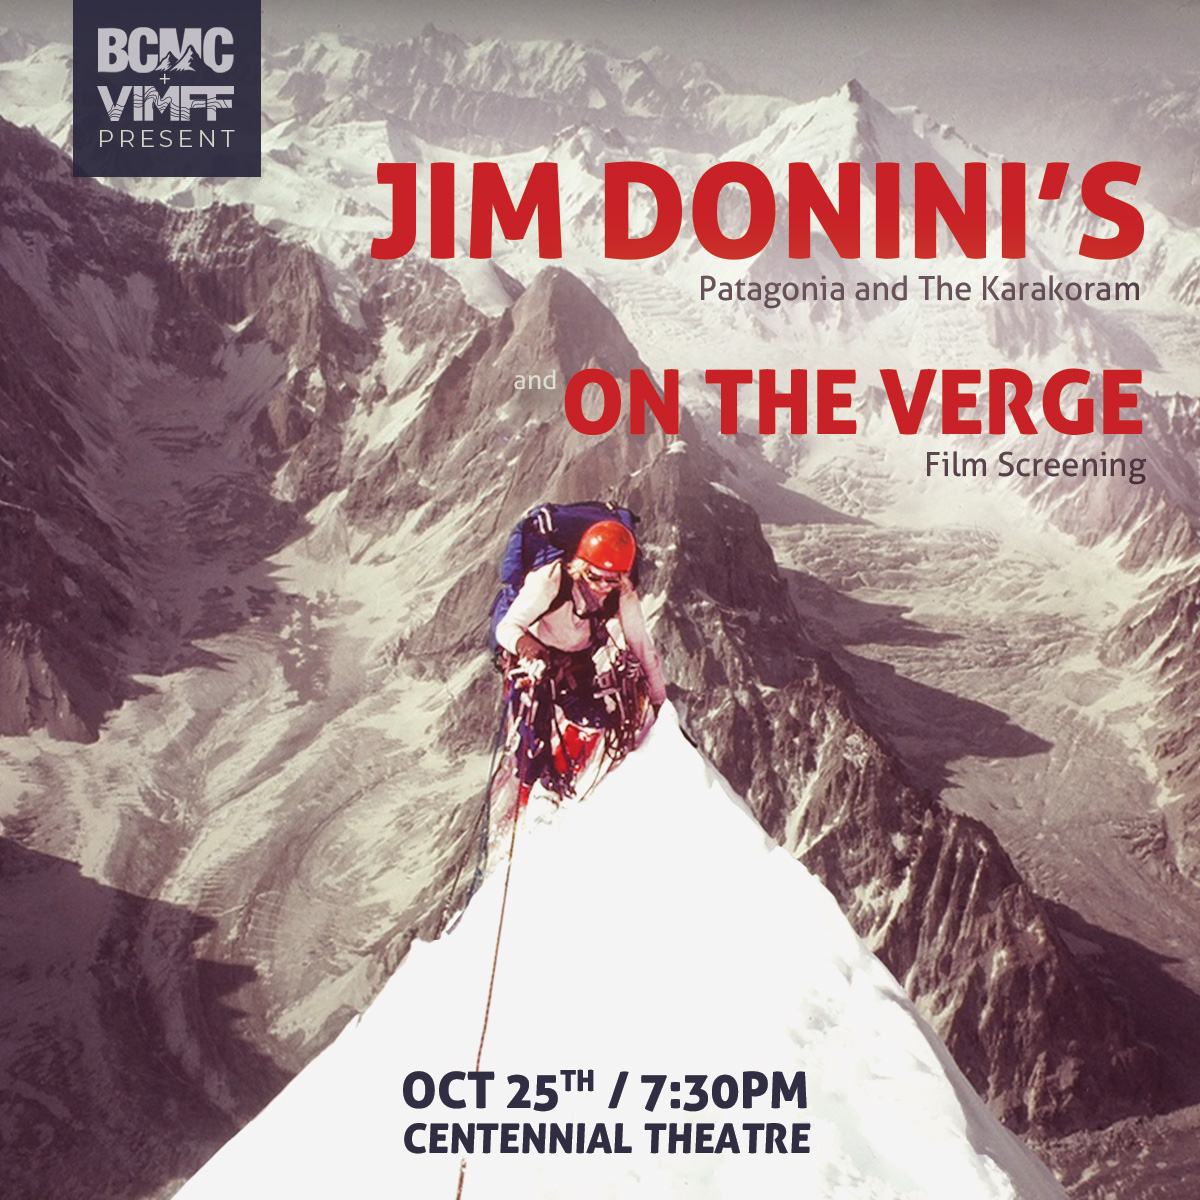 VIMFF fall series BCMC event Jim Donini featured